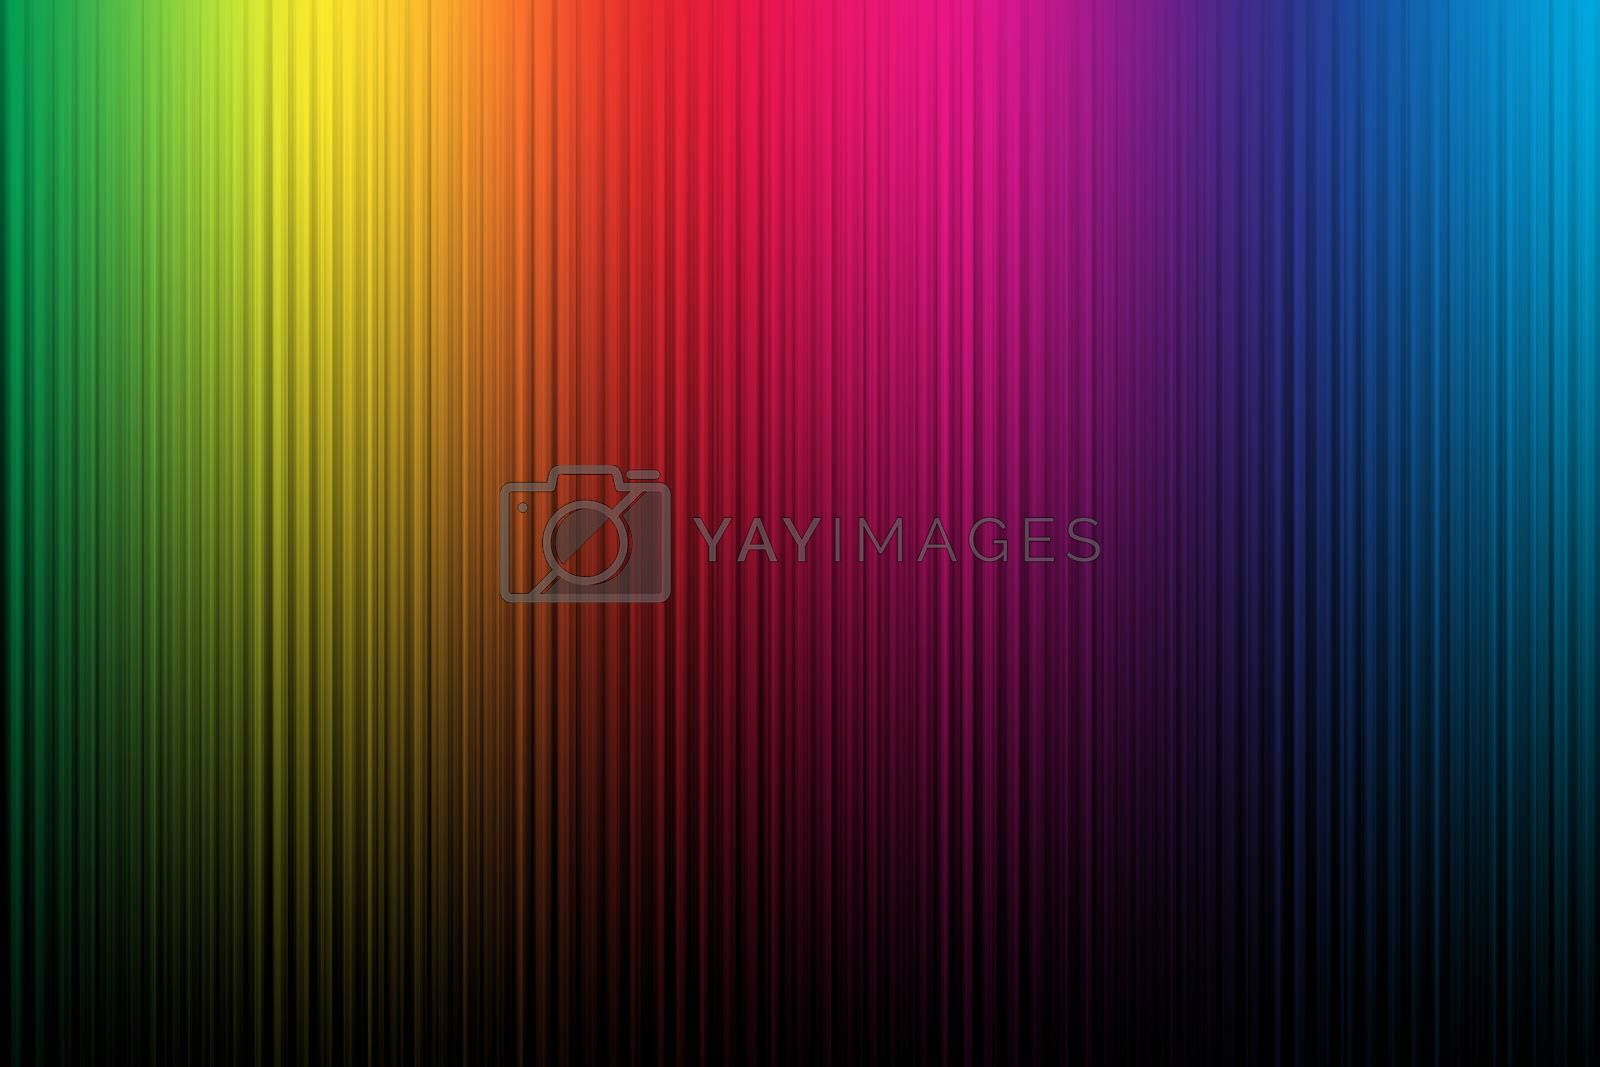 Illustration of colorful stripped background